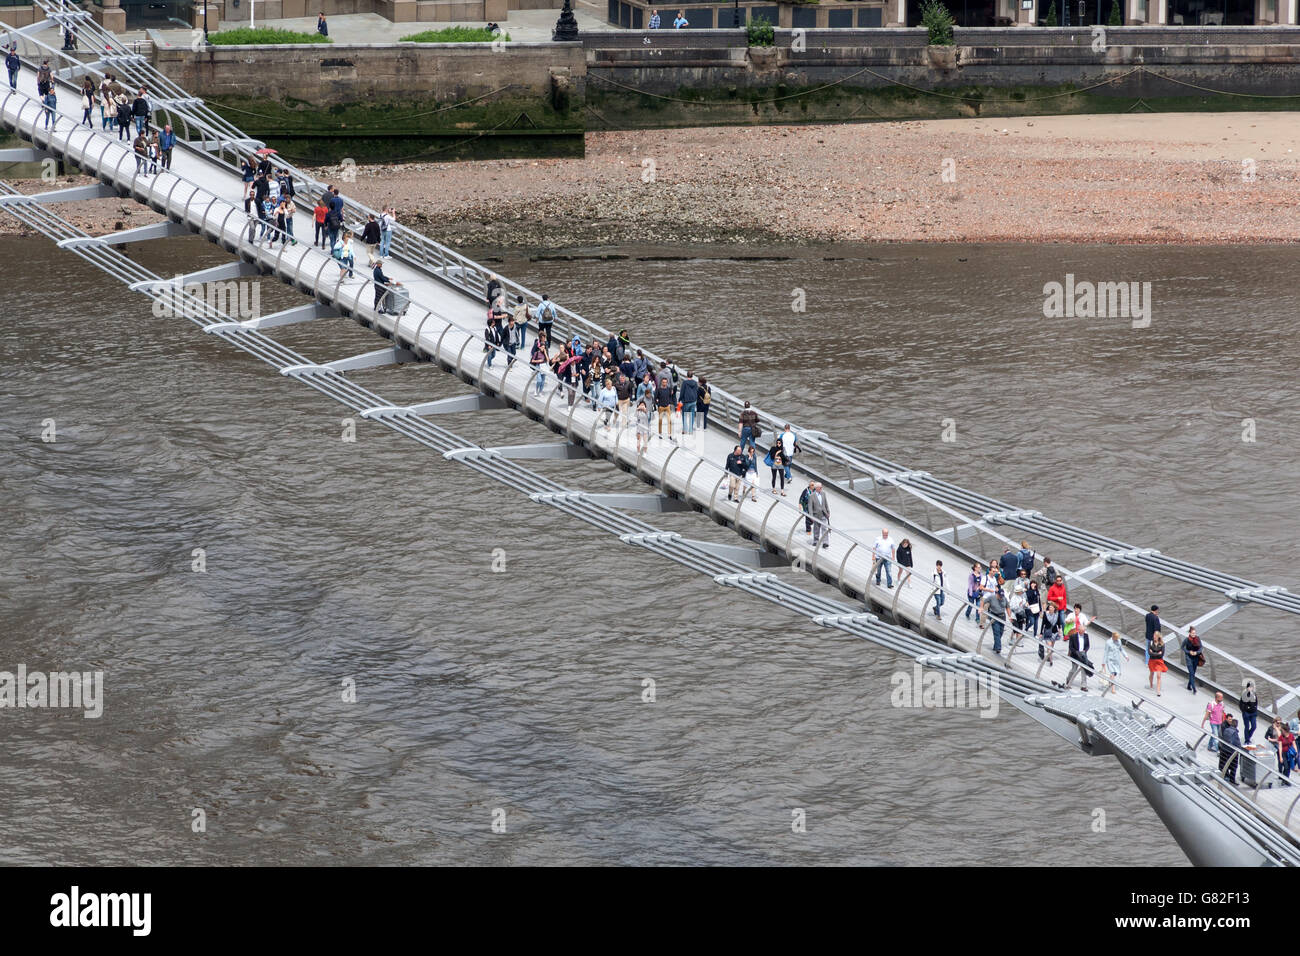 Millennium Bridge over River Thames, London, UK - Stock Image